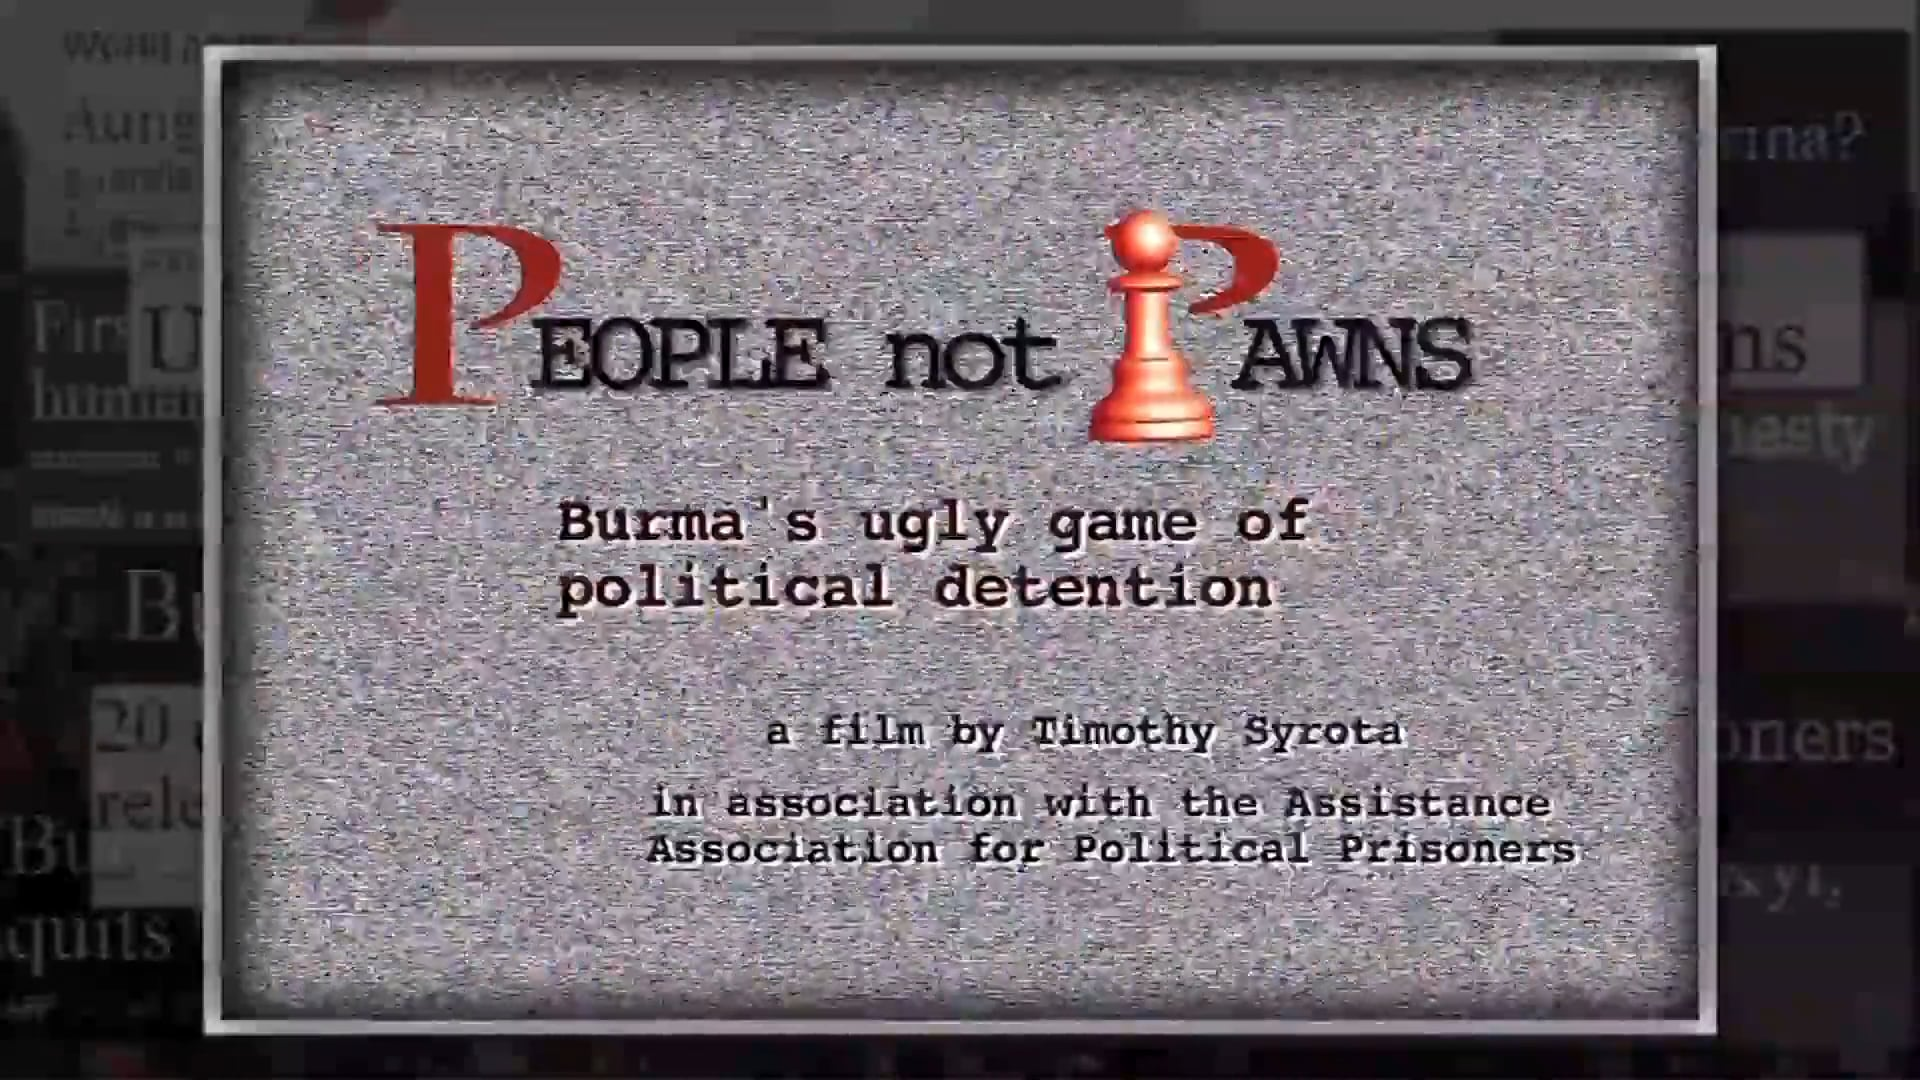 People not Pawns